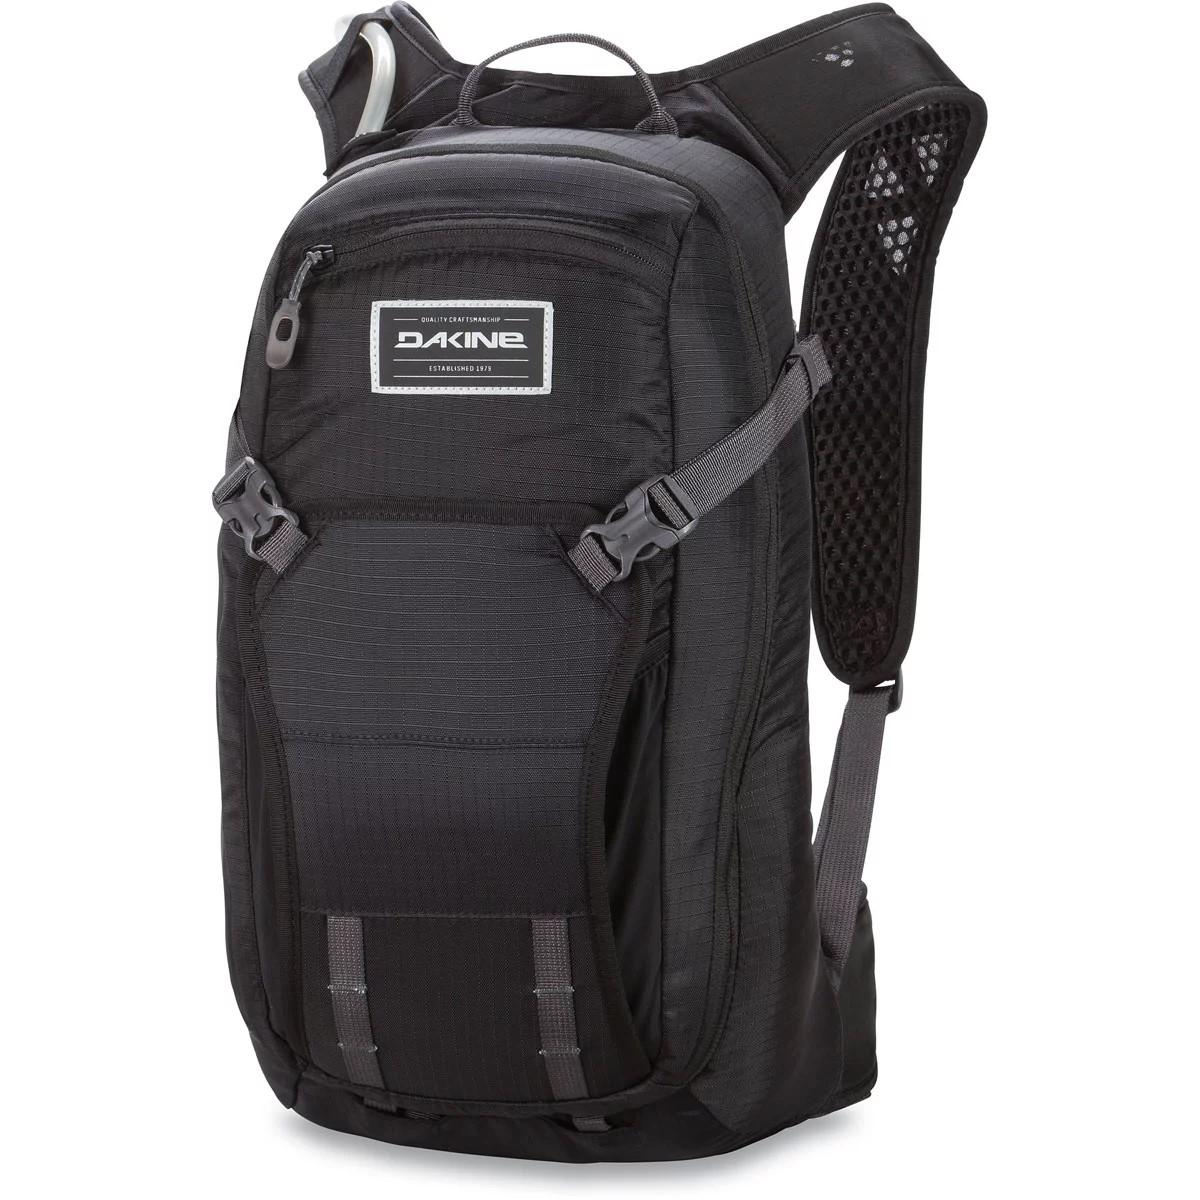 Dakine Drafter 10 Pack in Black